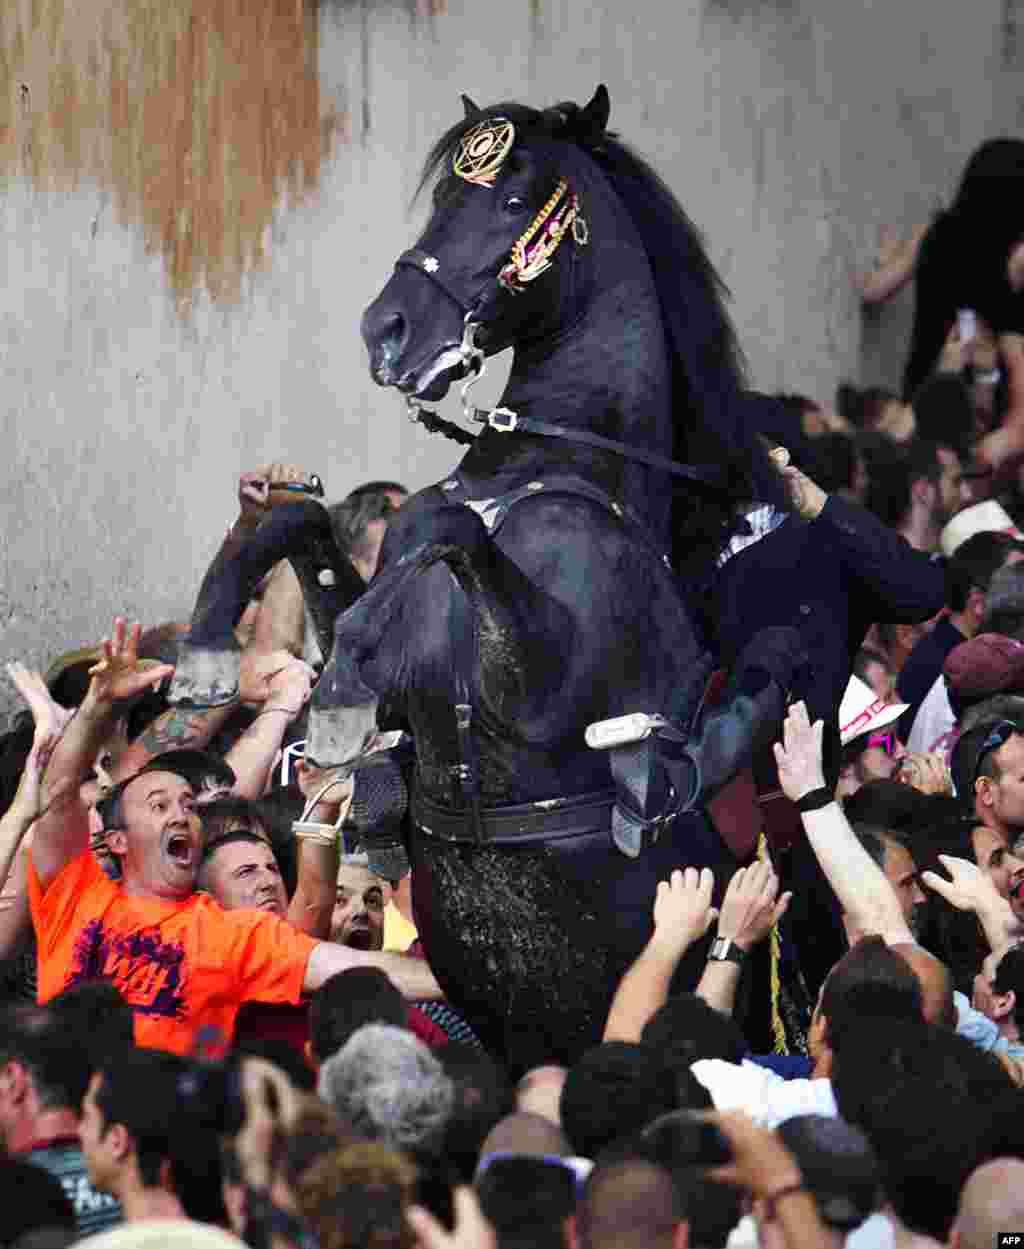 A horse rears in a crowd during a parade at the traditional San Juan festival in the town of Ciutadella on the Balearic Island of Menorca. (AFP/Jaime Reina)